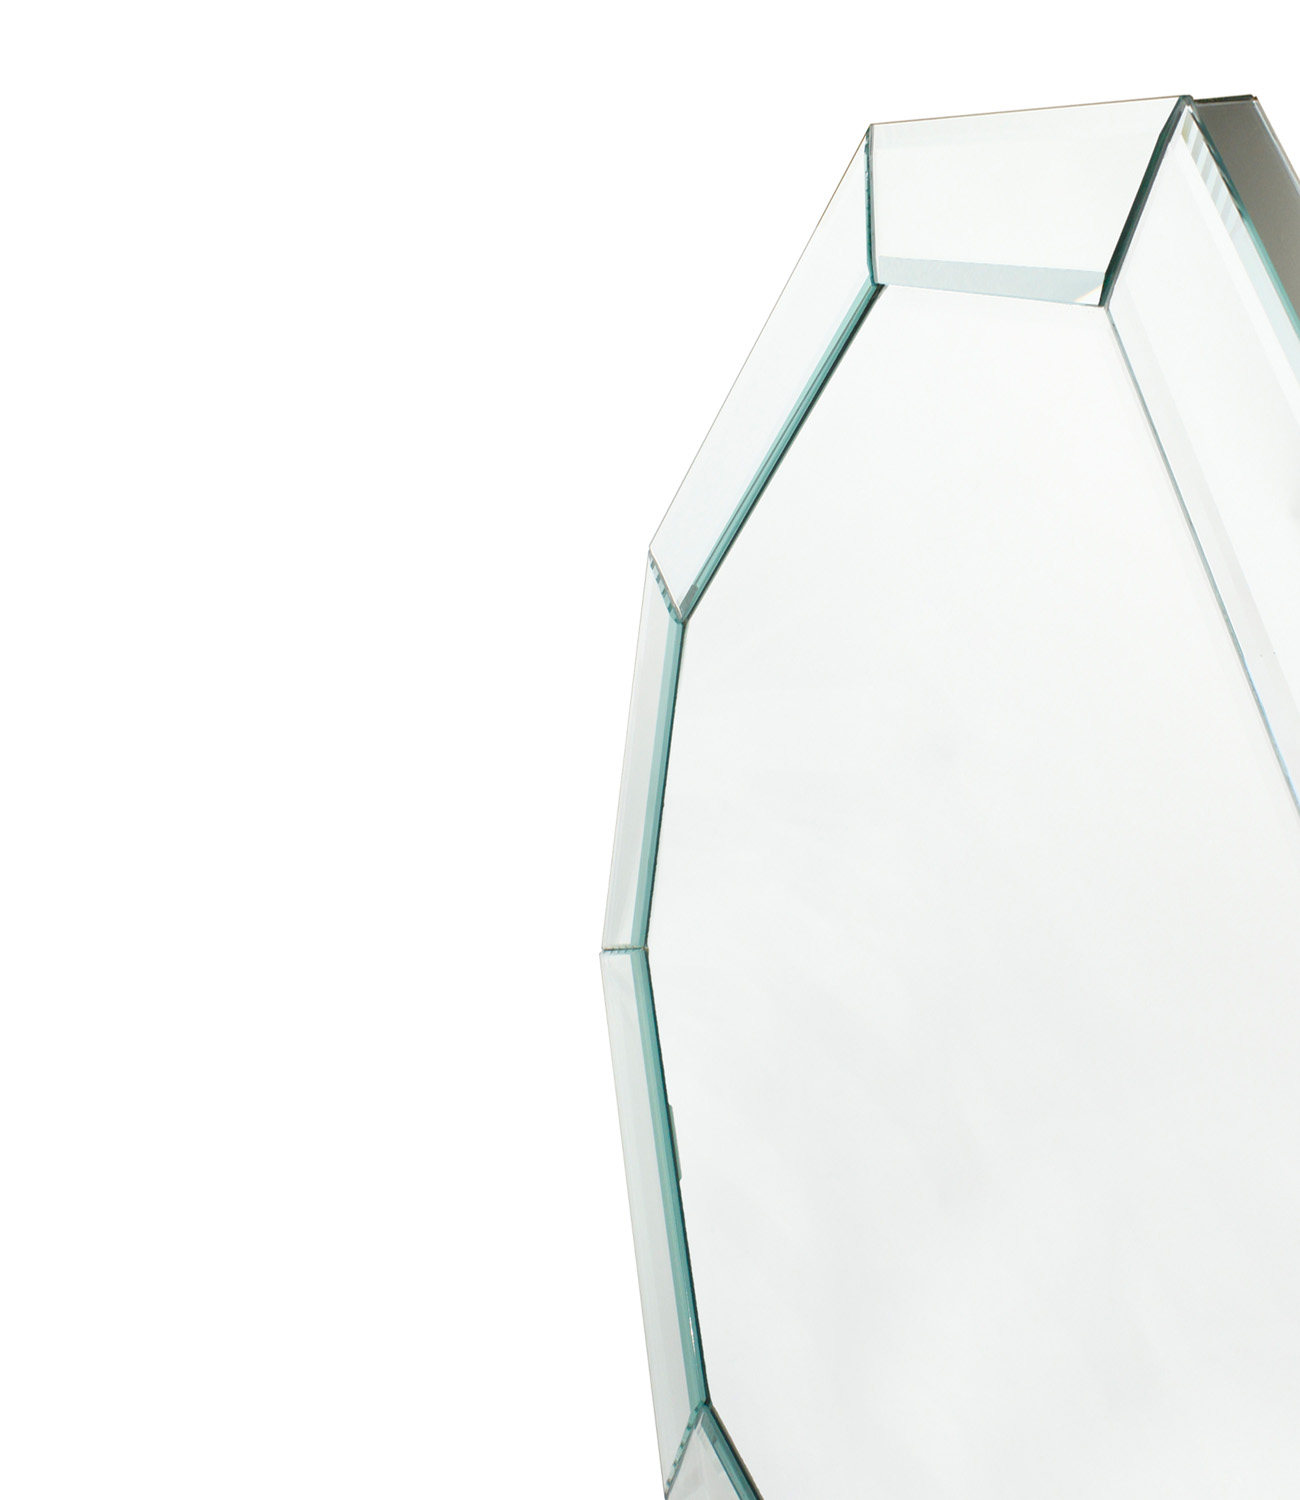 60s 8sided double beveled mirror176 detail.jpg